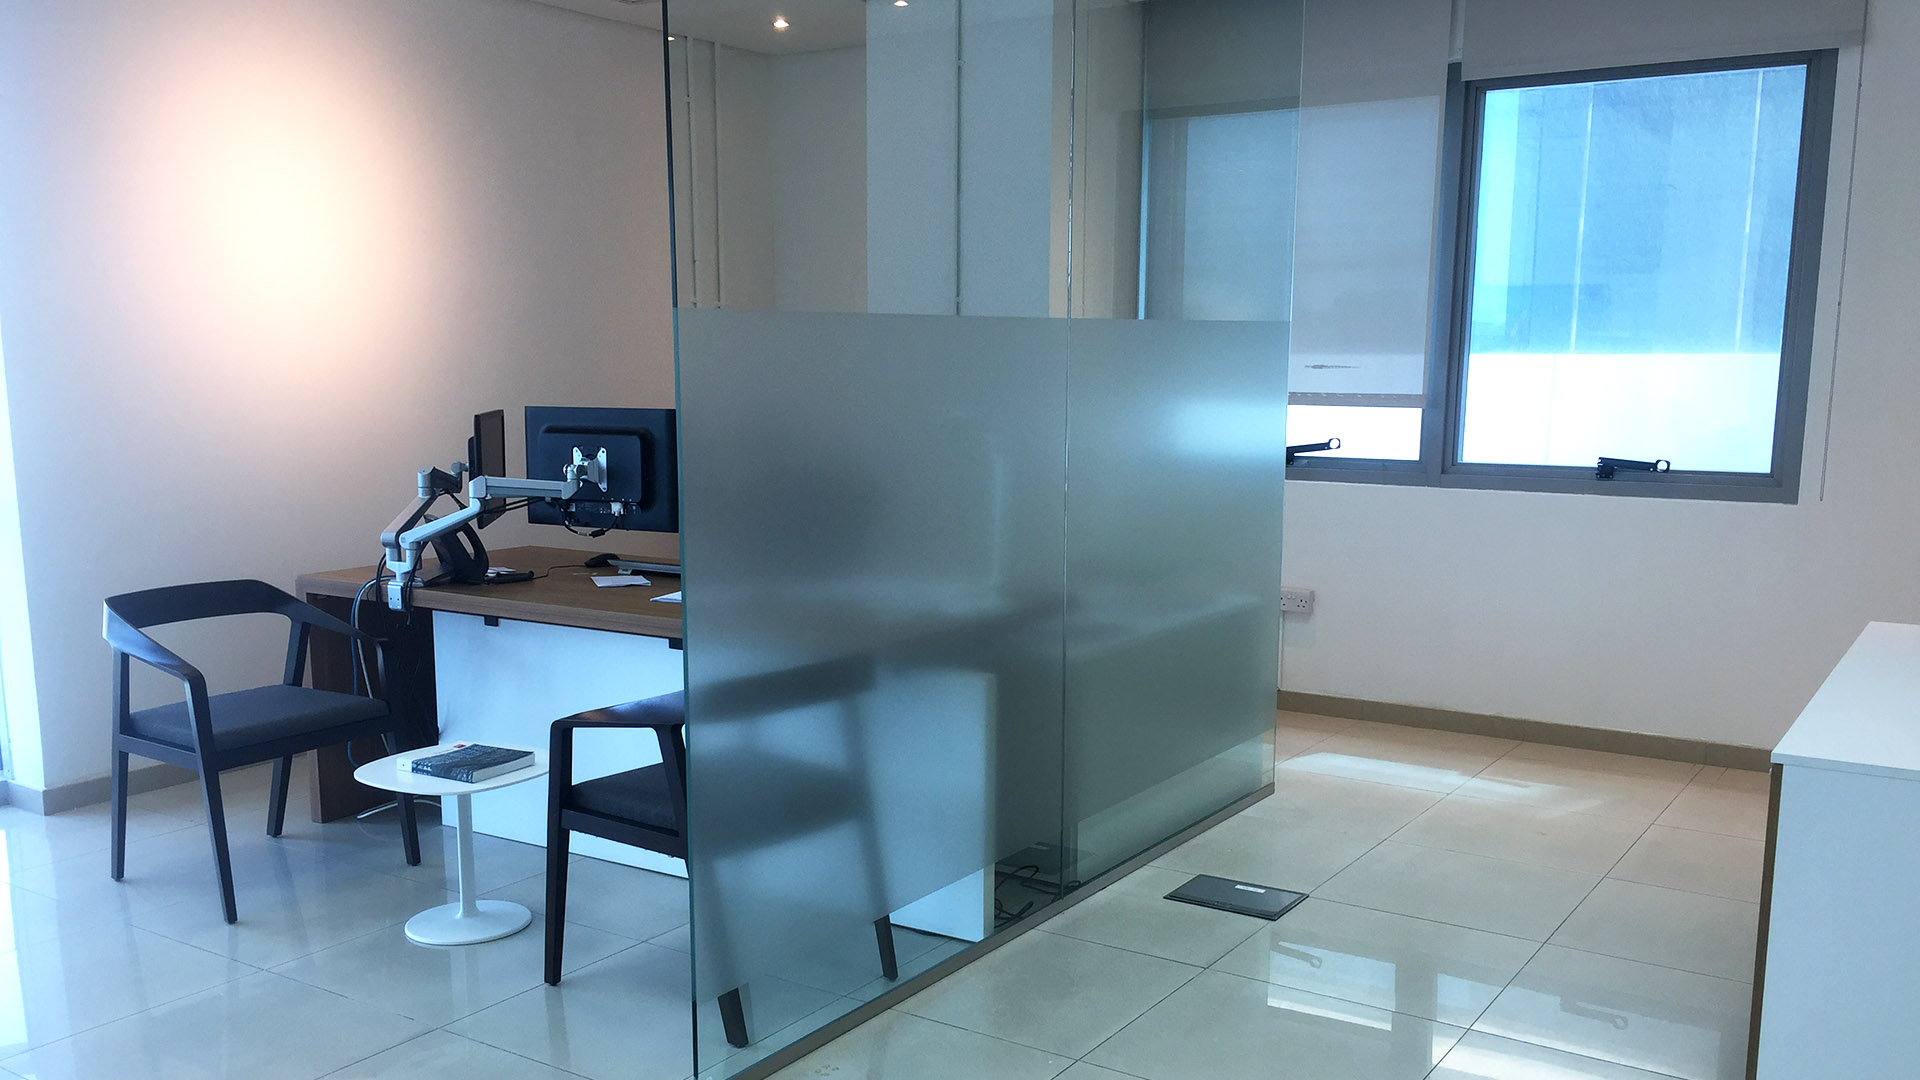 3M Fasara Frosted Vinyl for privacy glass at Hamad Hospital, Qatar. Installed by ME Visual